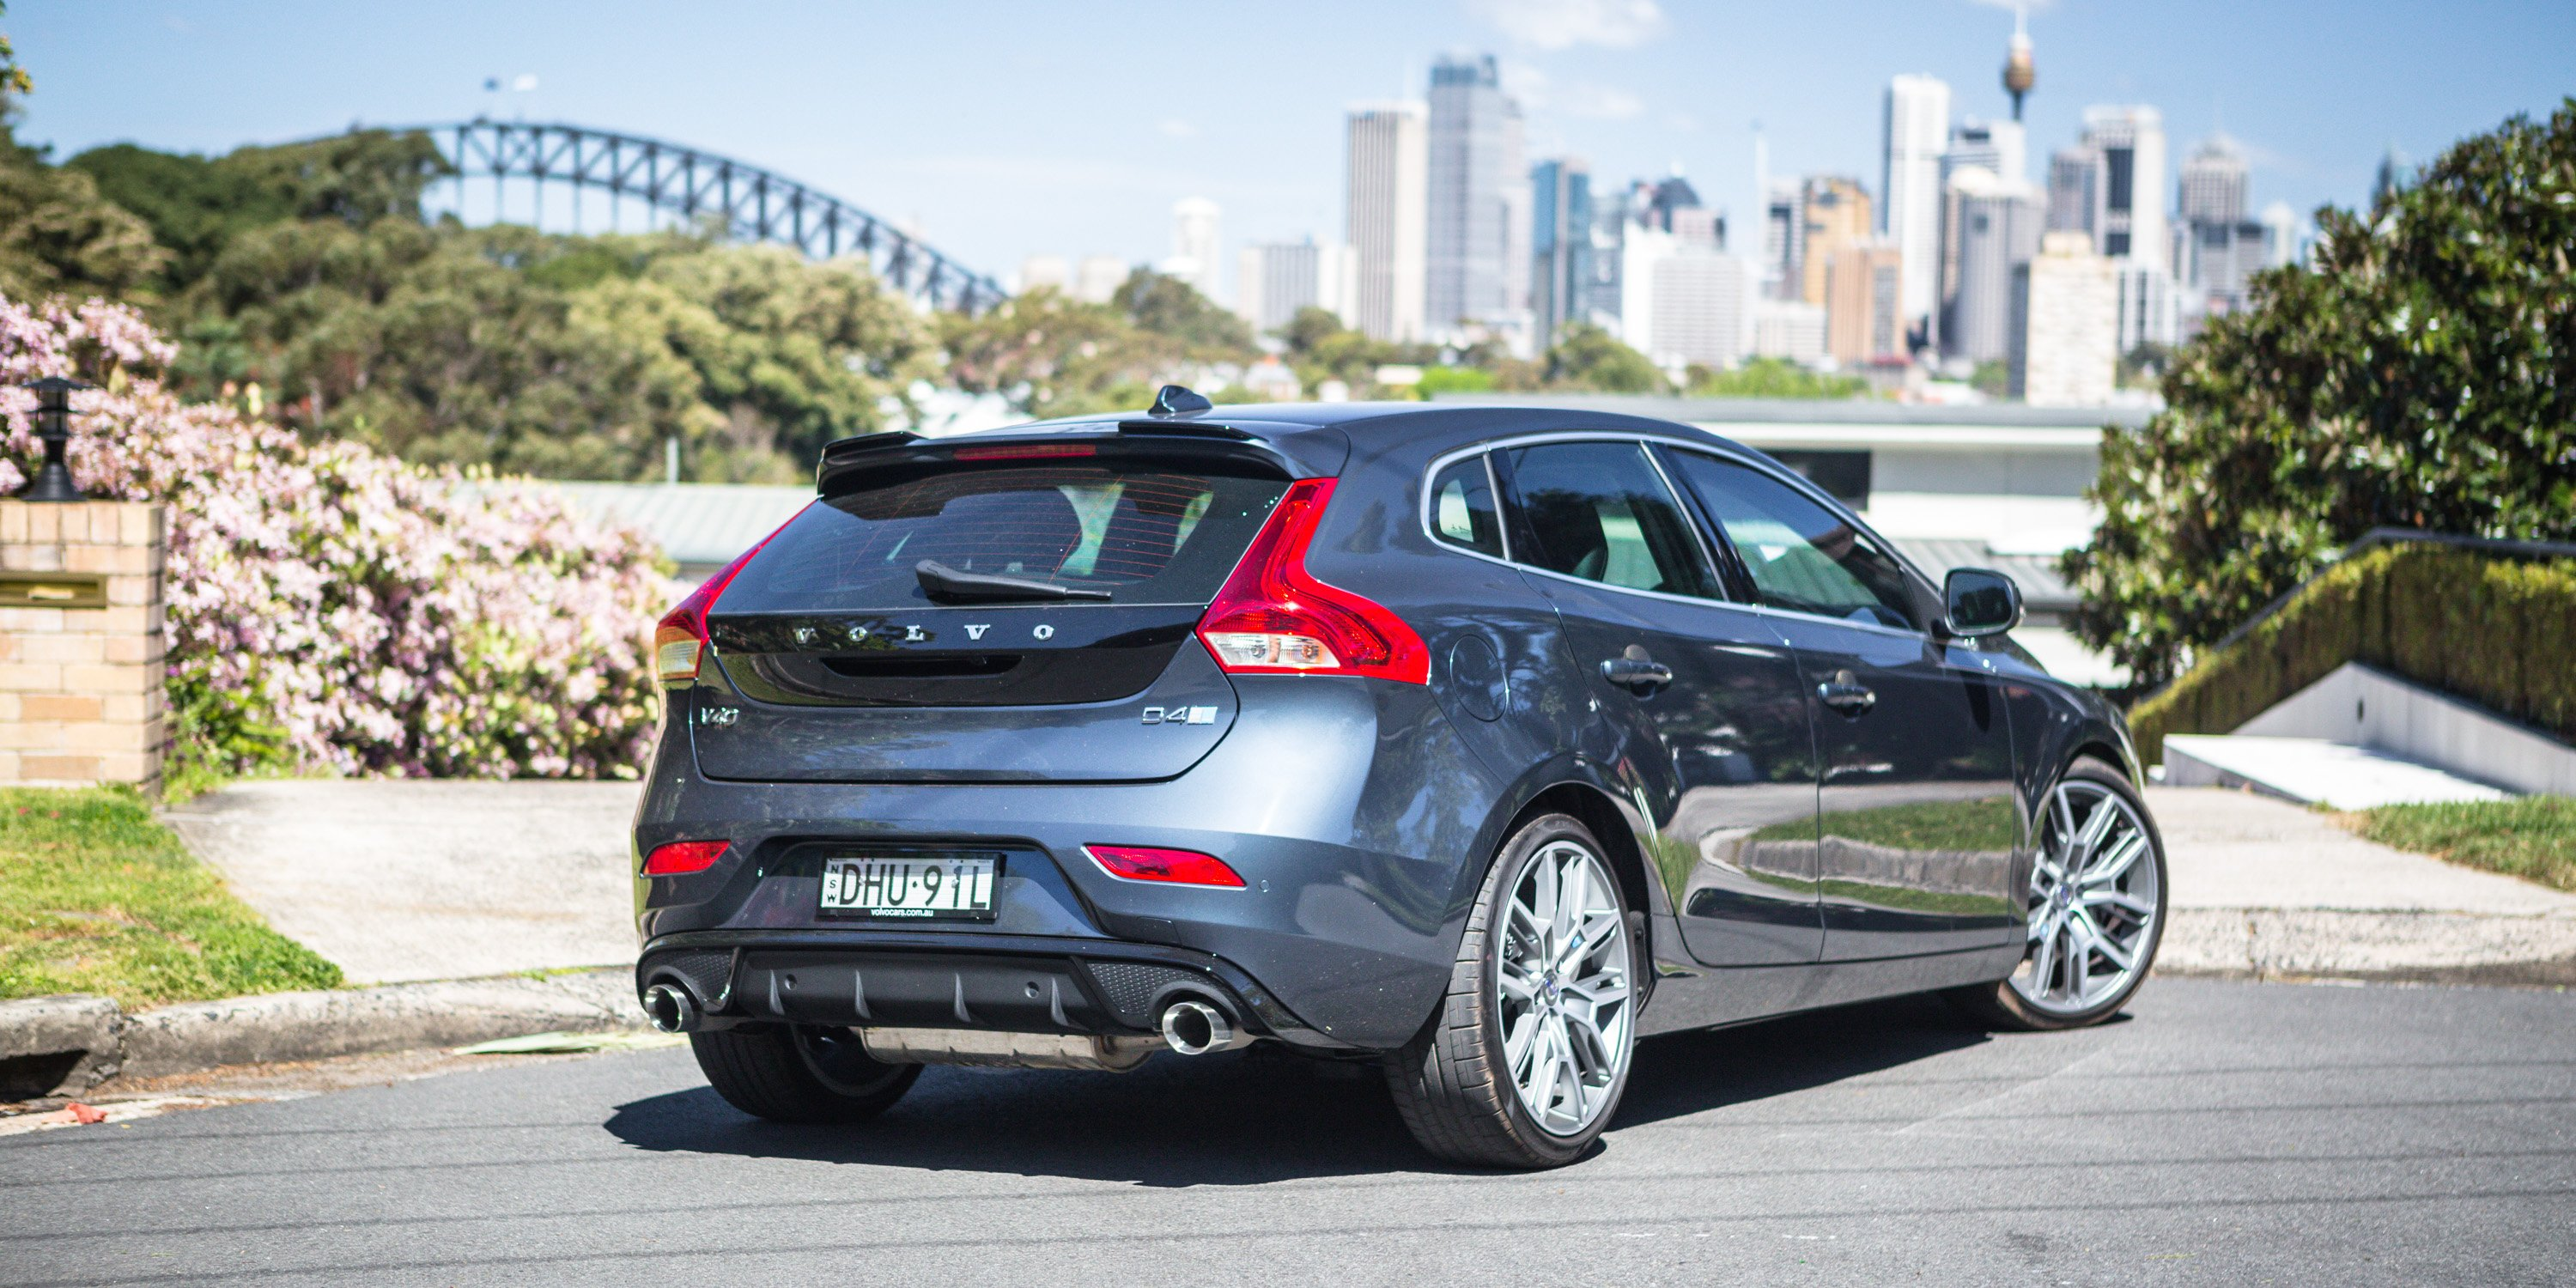 2017 Volvo V40 D4 Review: Inscription with Polestar Performance pack - photos | CarAdvice